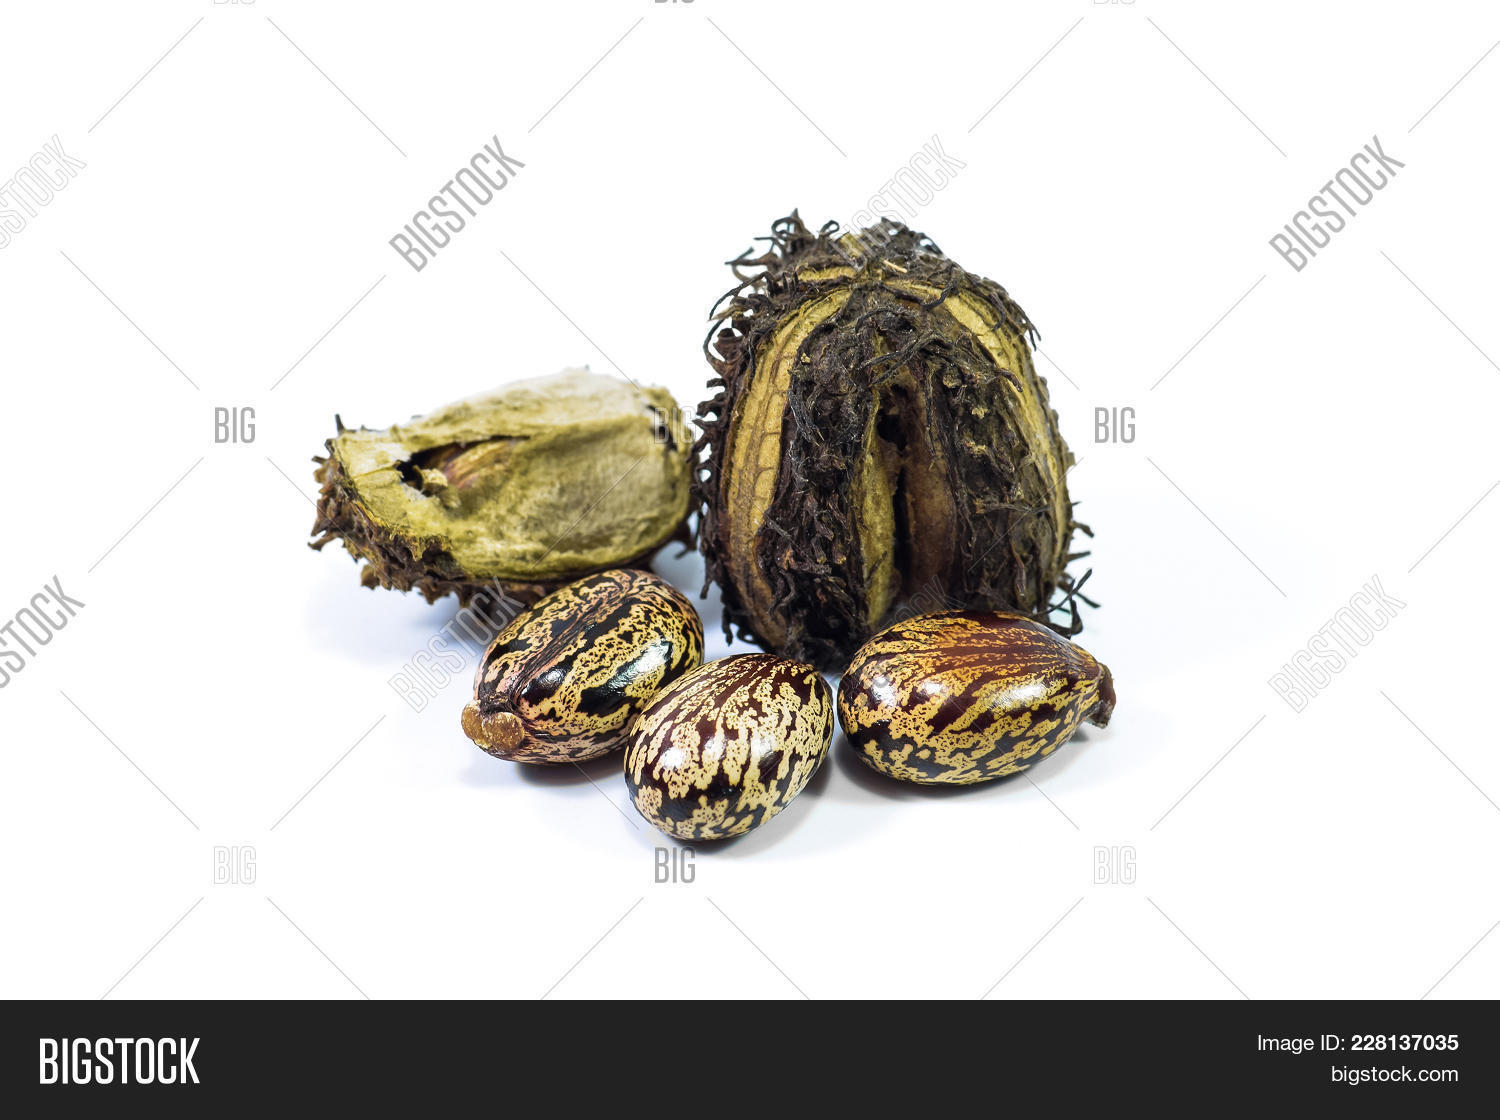 Castor Seeds On White Image & Photo (Free Trial) | Bigstock